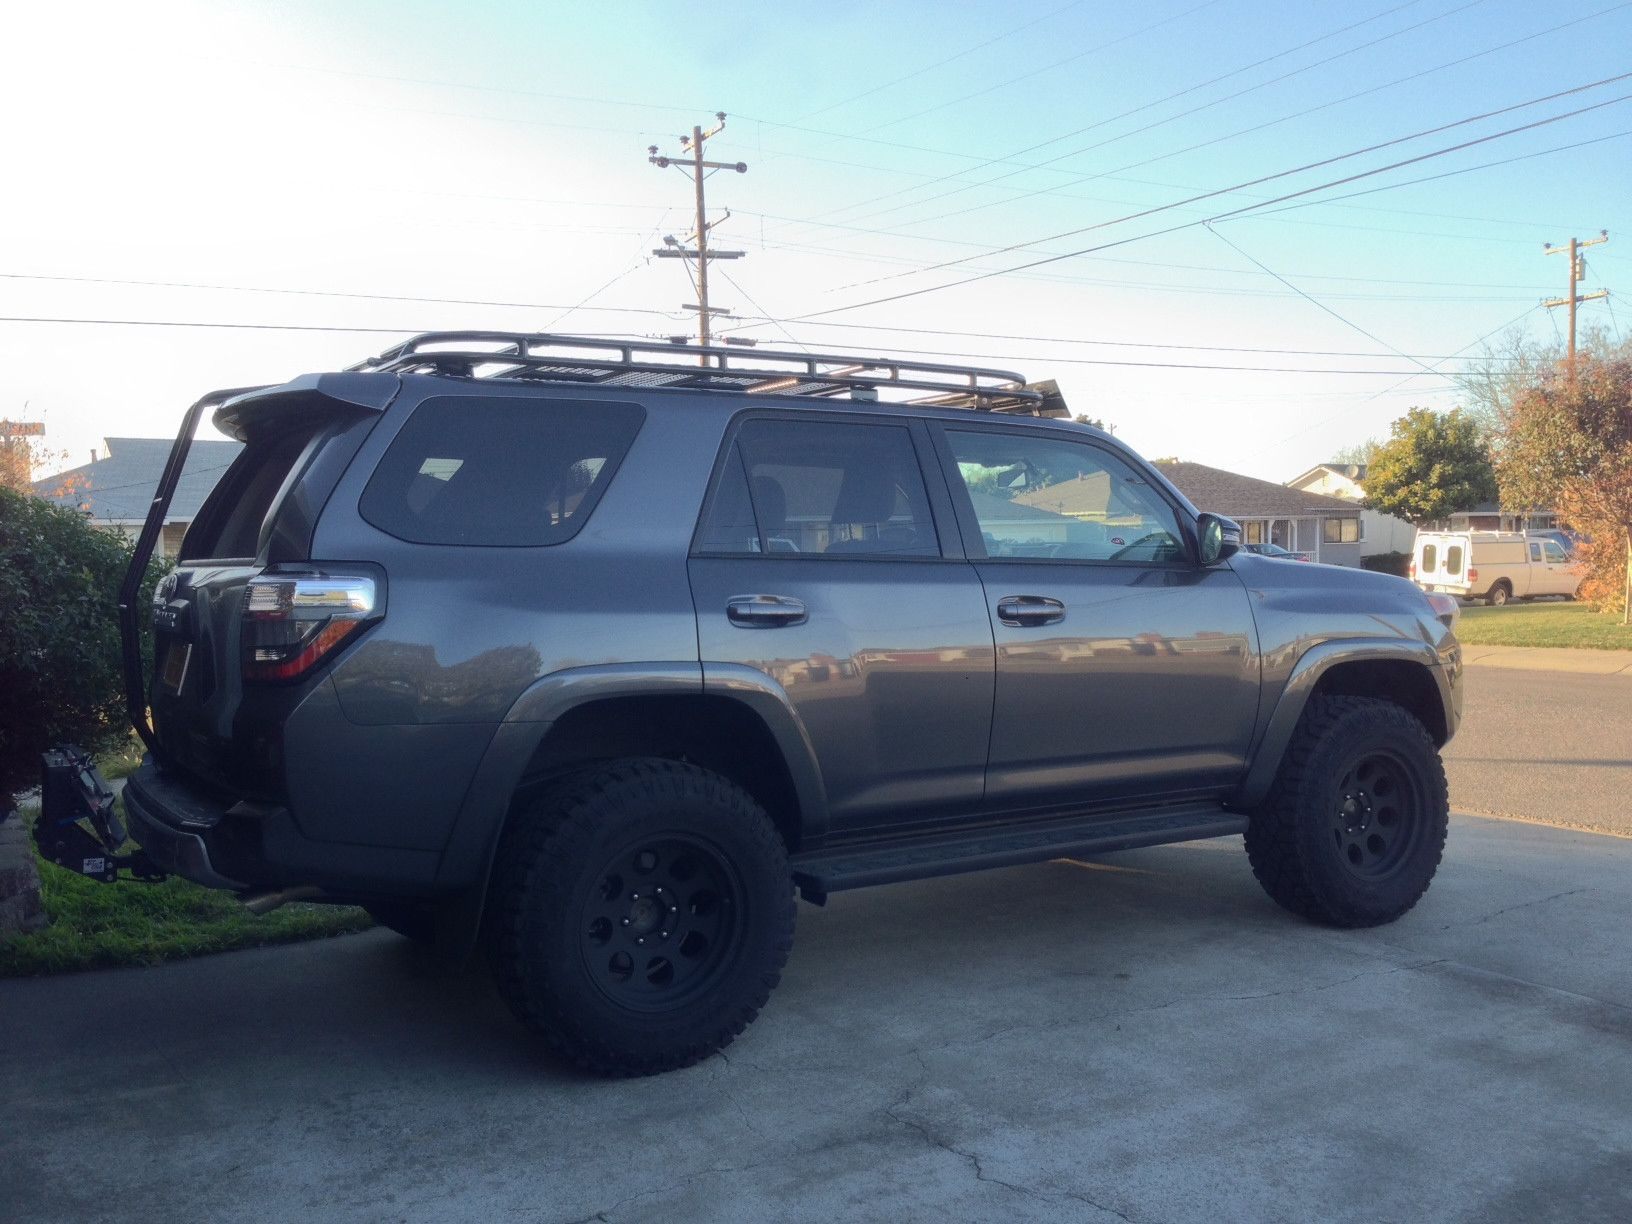 FS 5th Gen Full Length Roof Racks by drabbits Page 19 Toyota